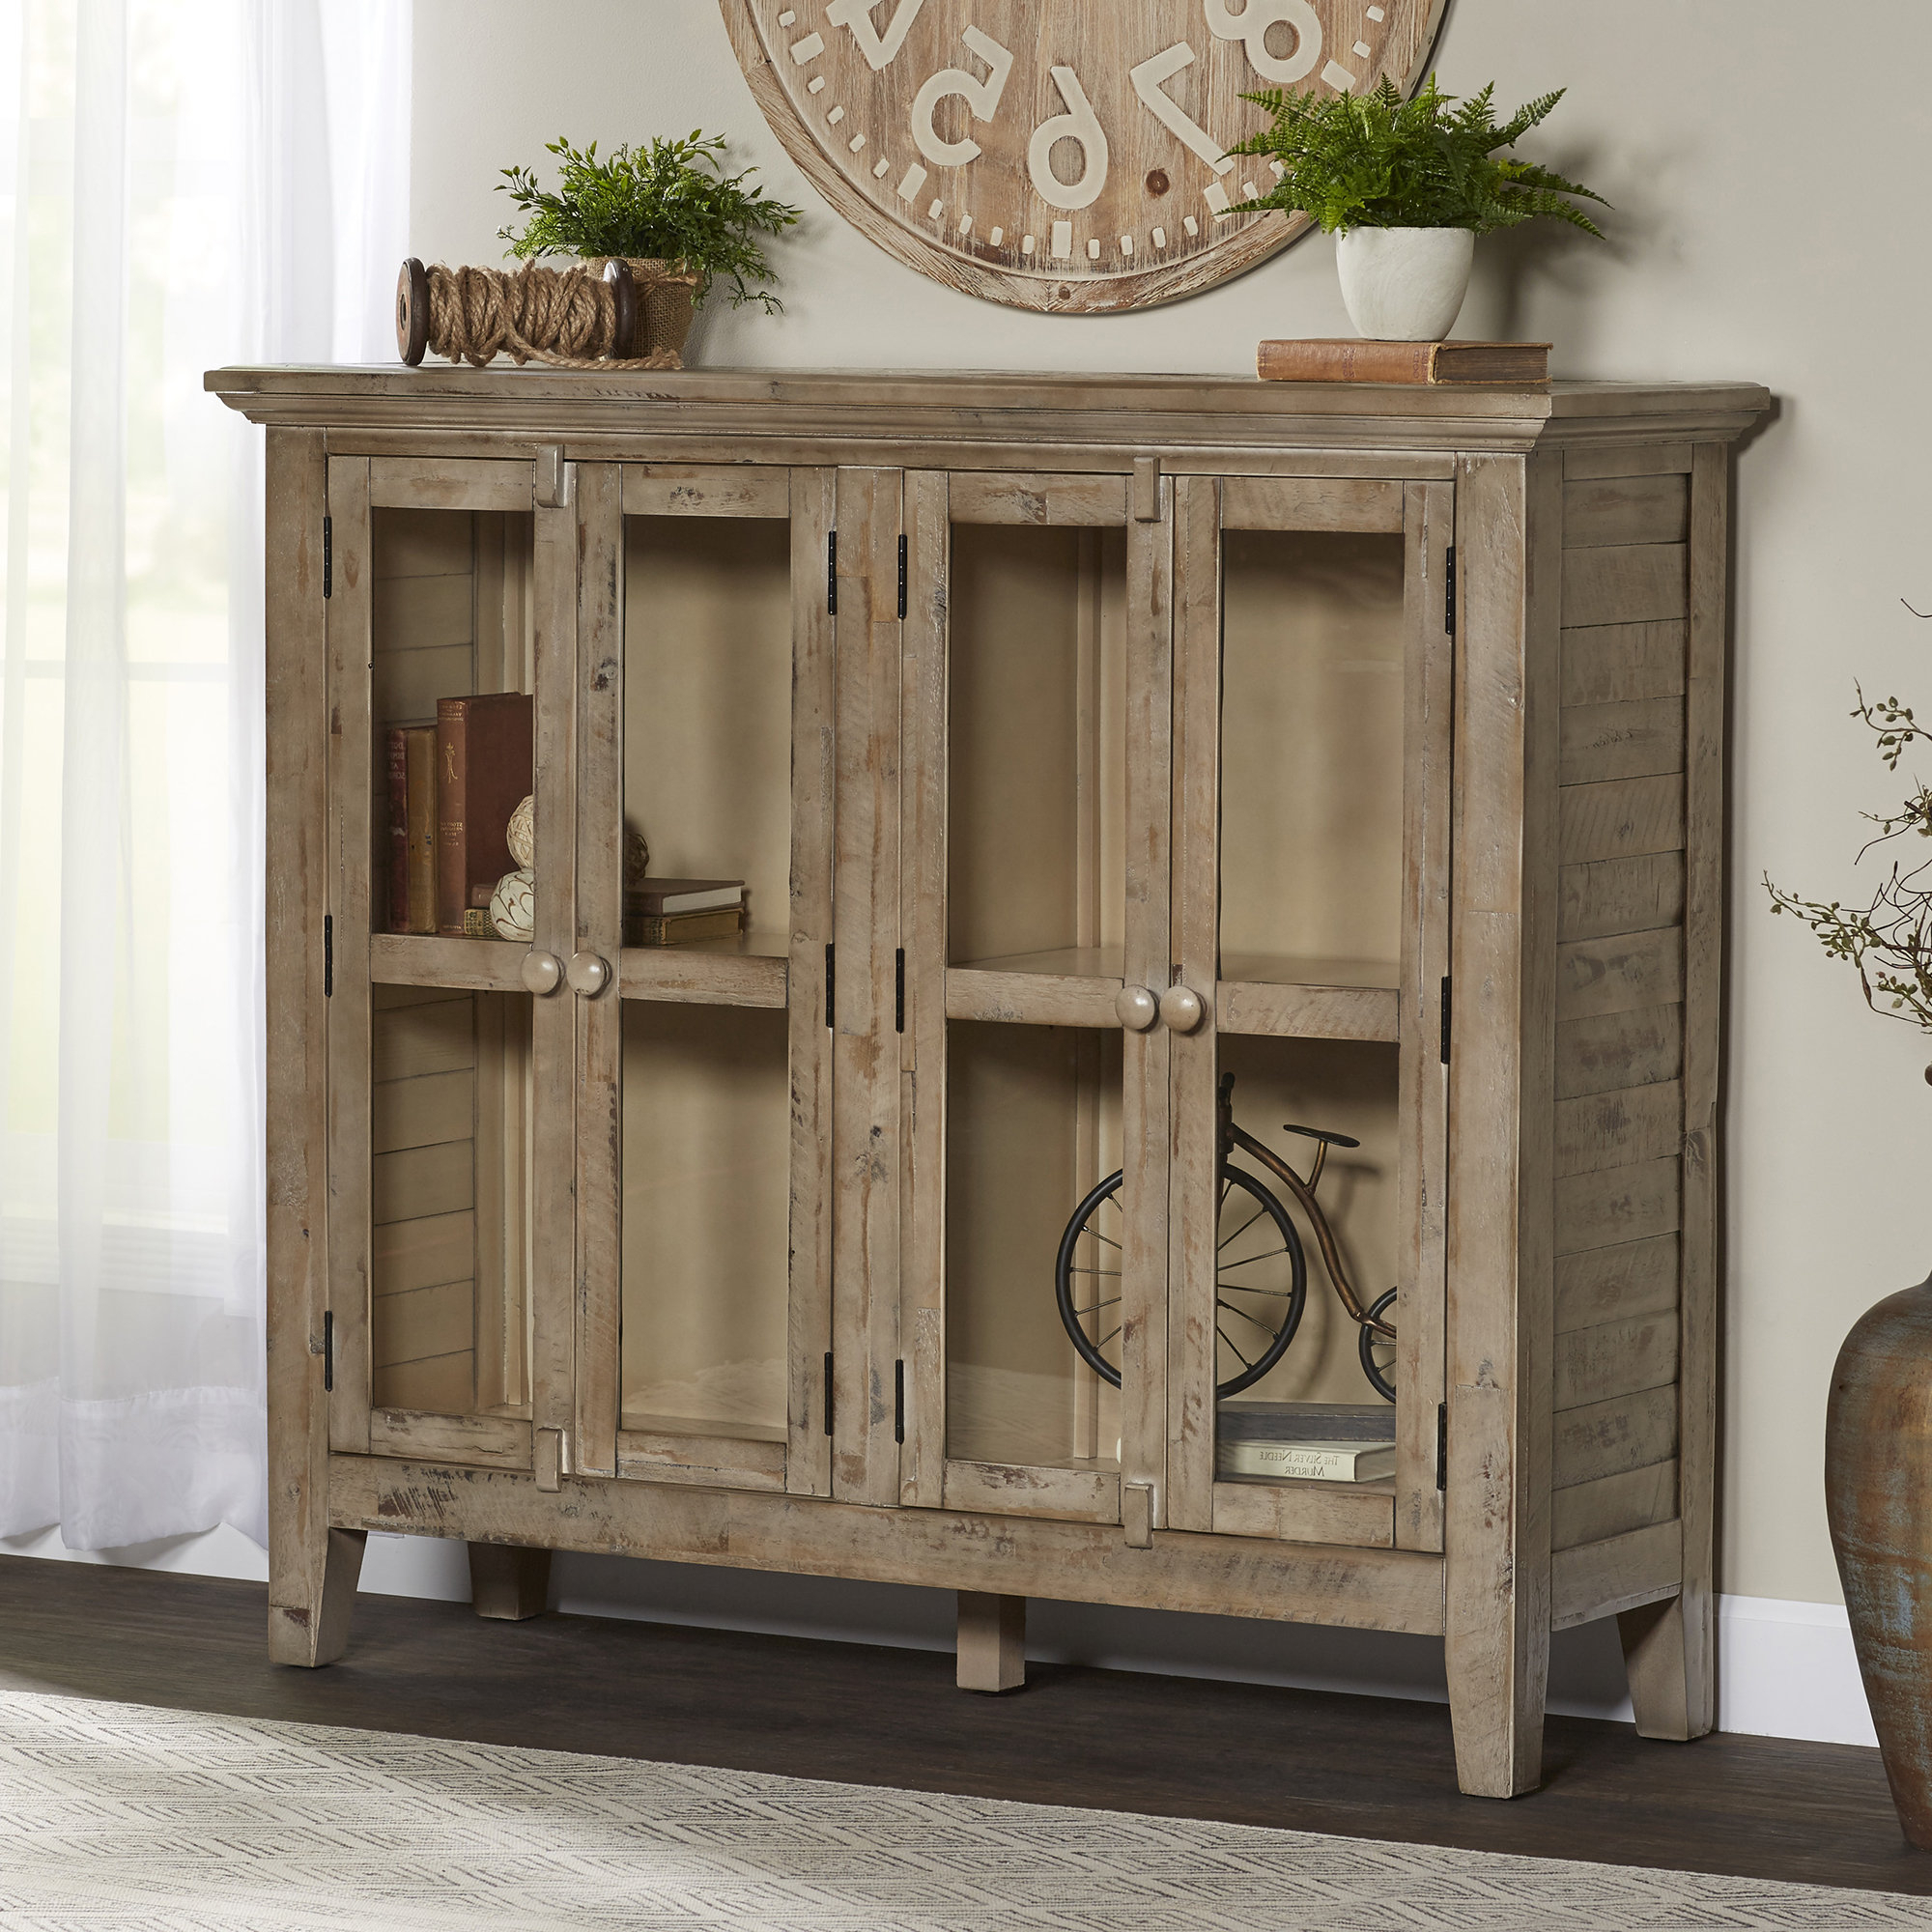 Eau Claire 4 Door Accent Cabinet Regarding Eau Claire 6 Door Accent Cabinets (Gallery 6 of 20)